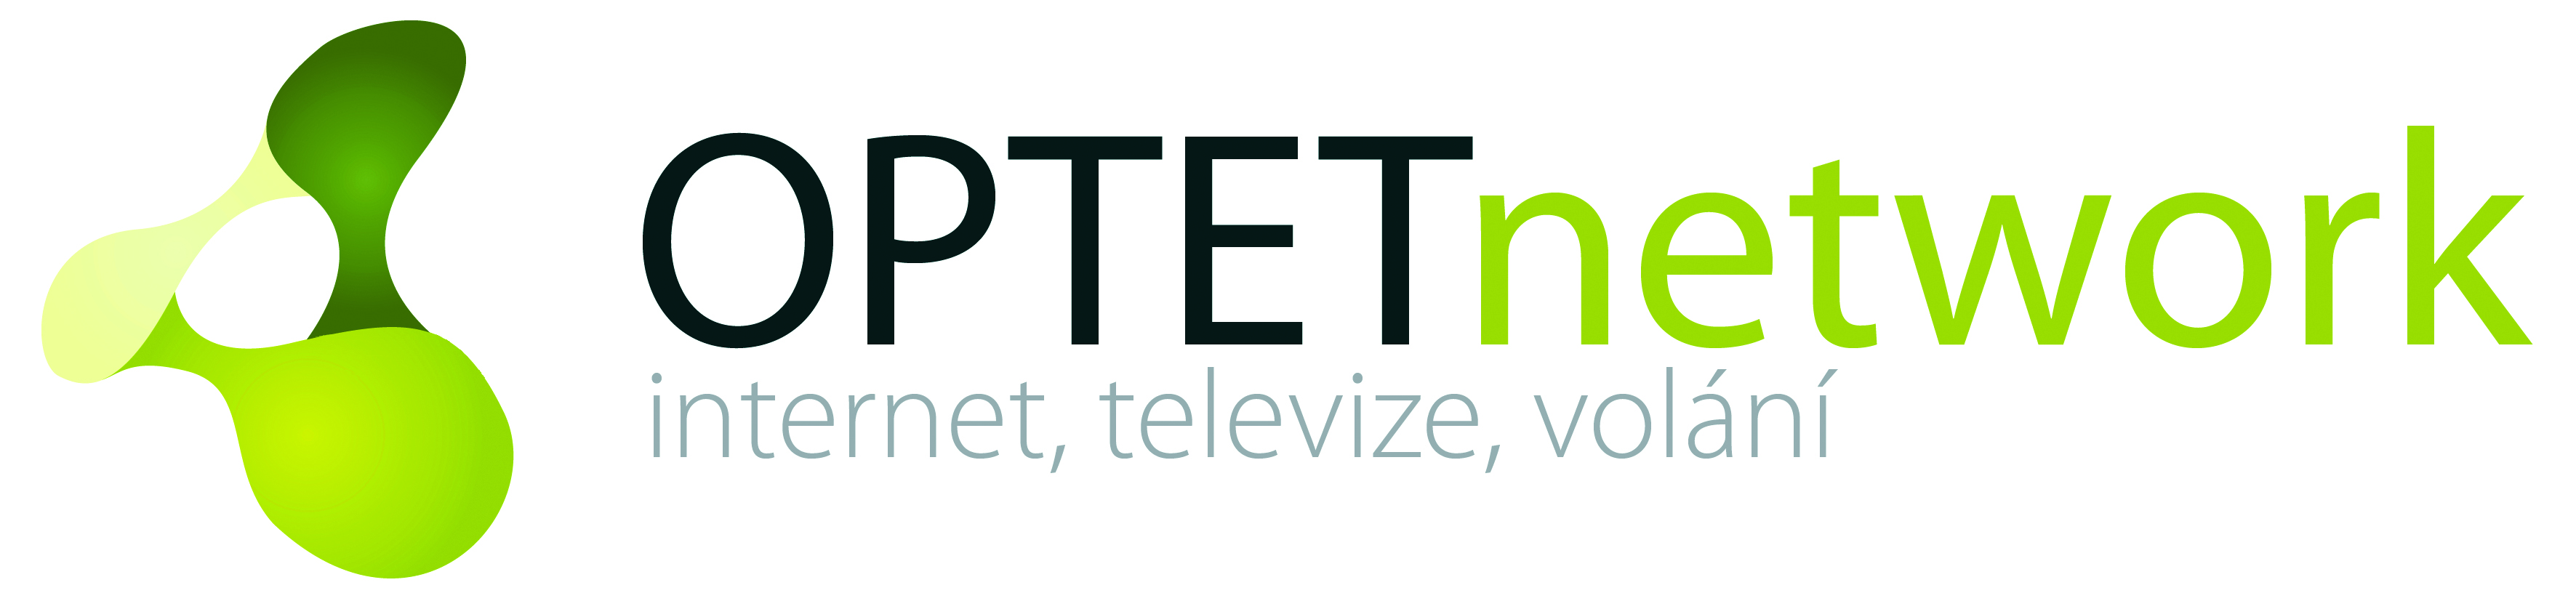 Optet network, s.r.o.